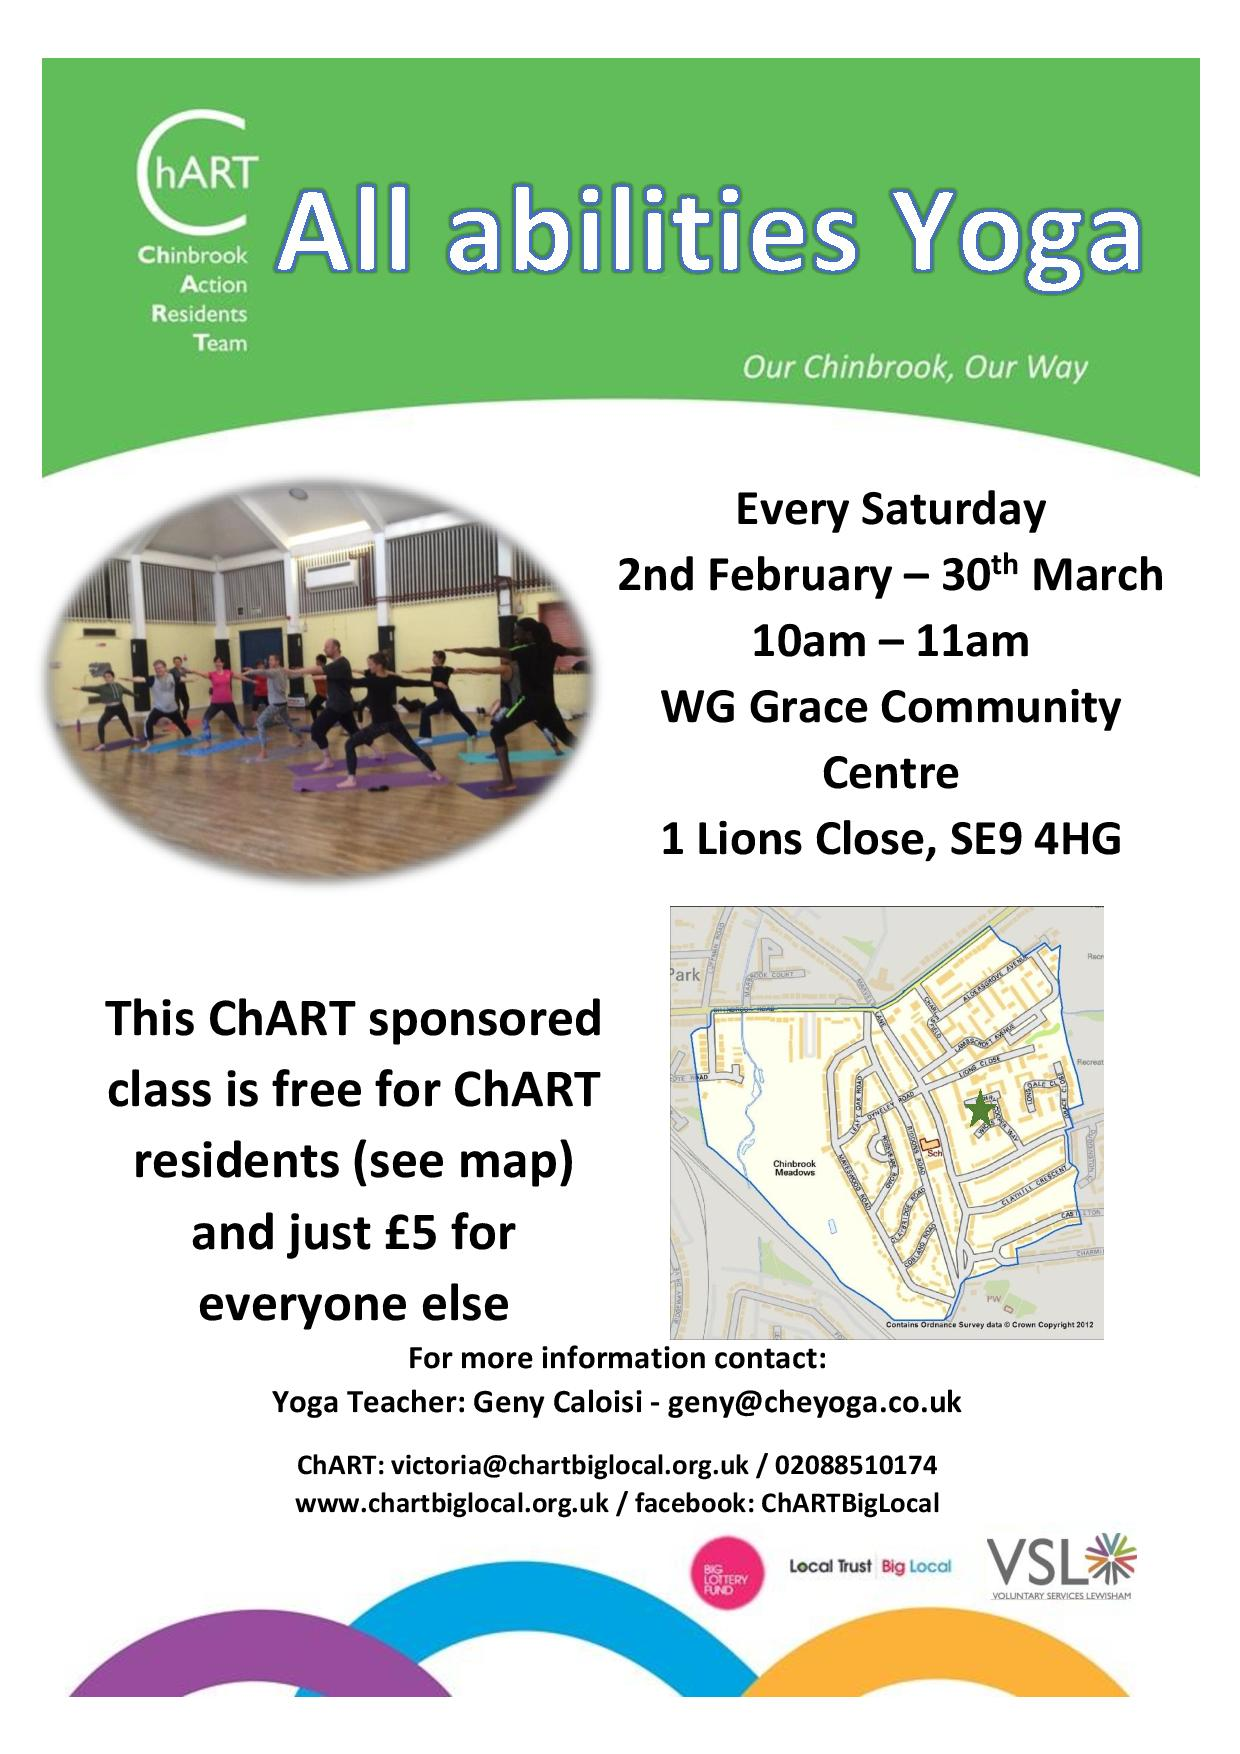 Yoga Spring 2019 . Class runs every Saturday from 2nd February until 30th March. 10am - 11am. WG Grace Community Centre, 1 Lions Close, SE9 4HG